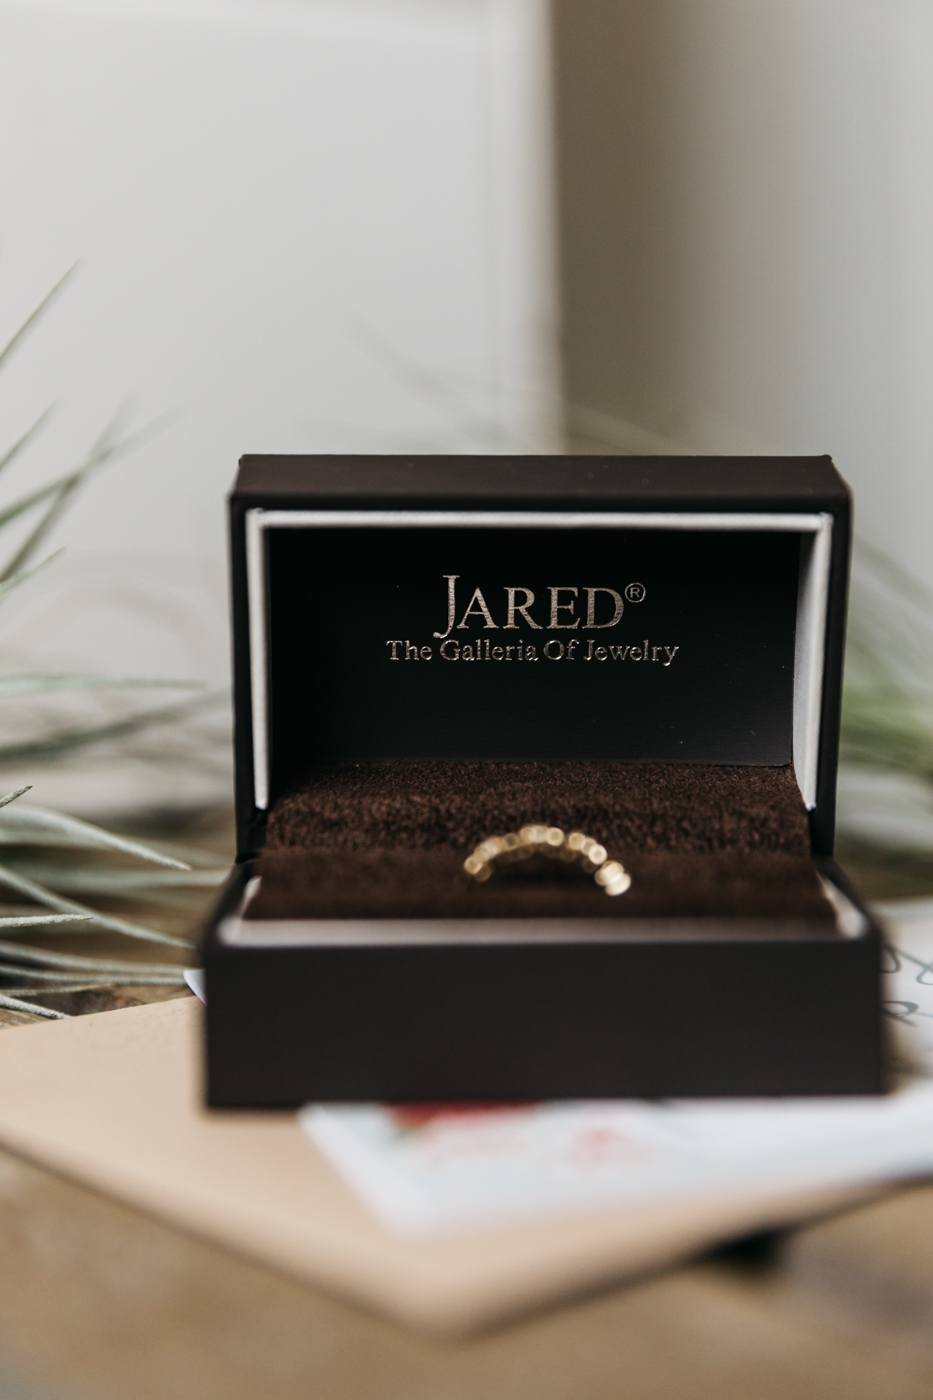 jared the galleria of jewelry, how to celebrate with jewelry, top lifestyle blog, the kentucky gent